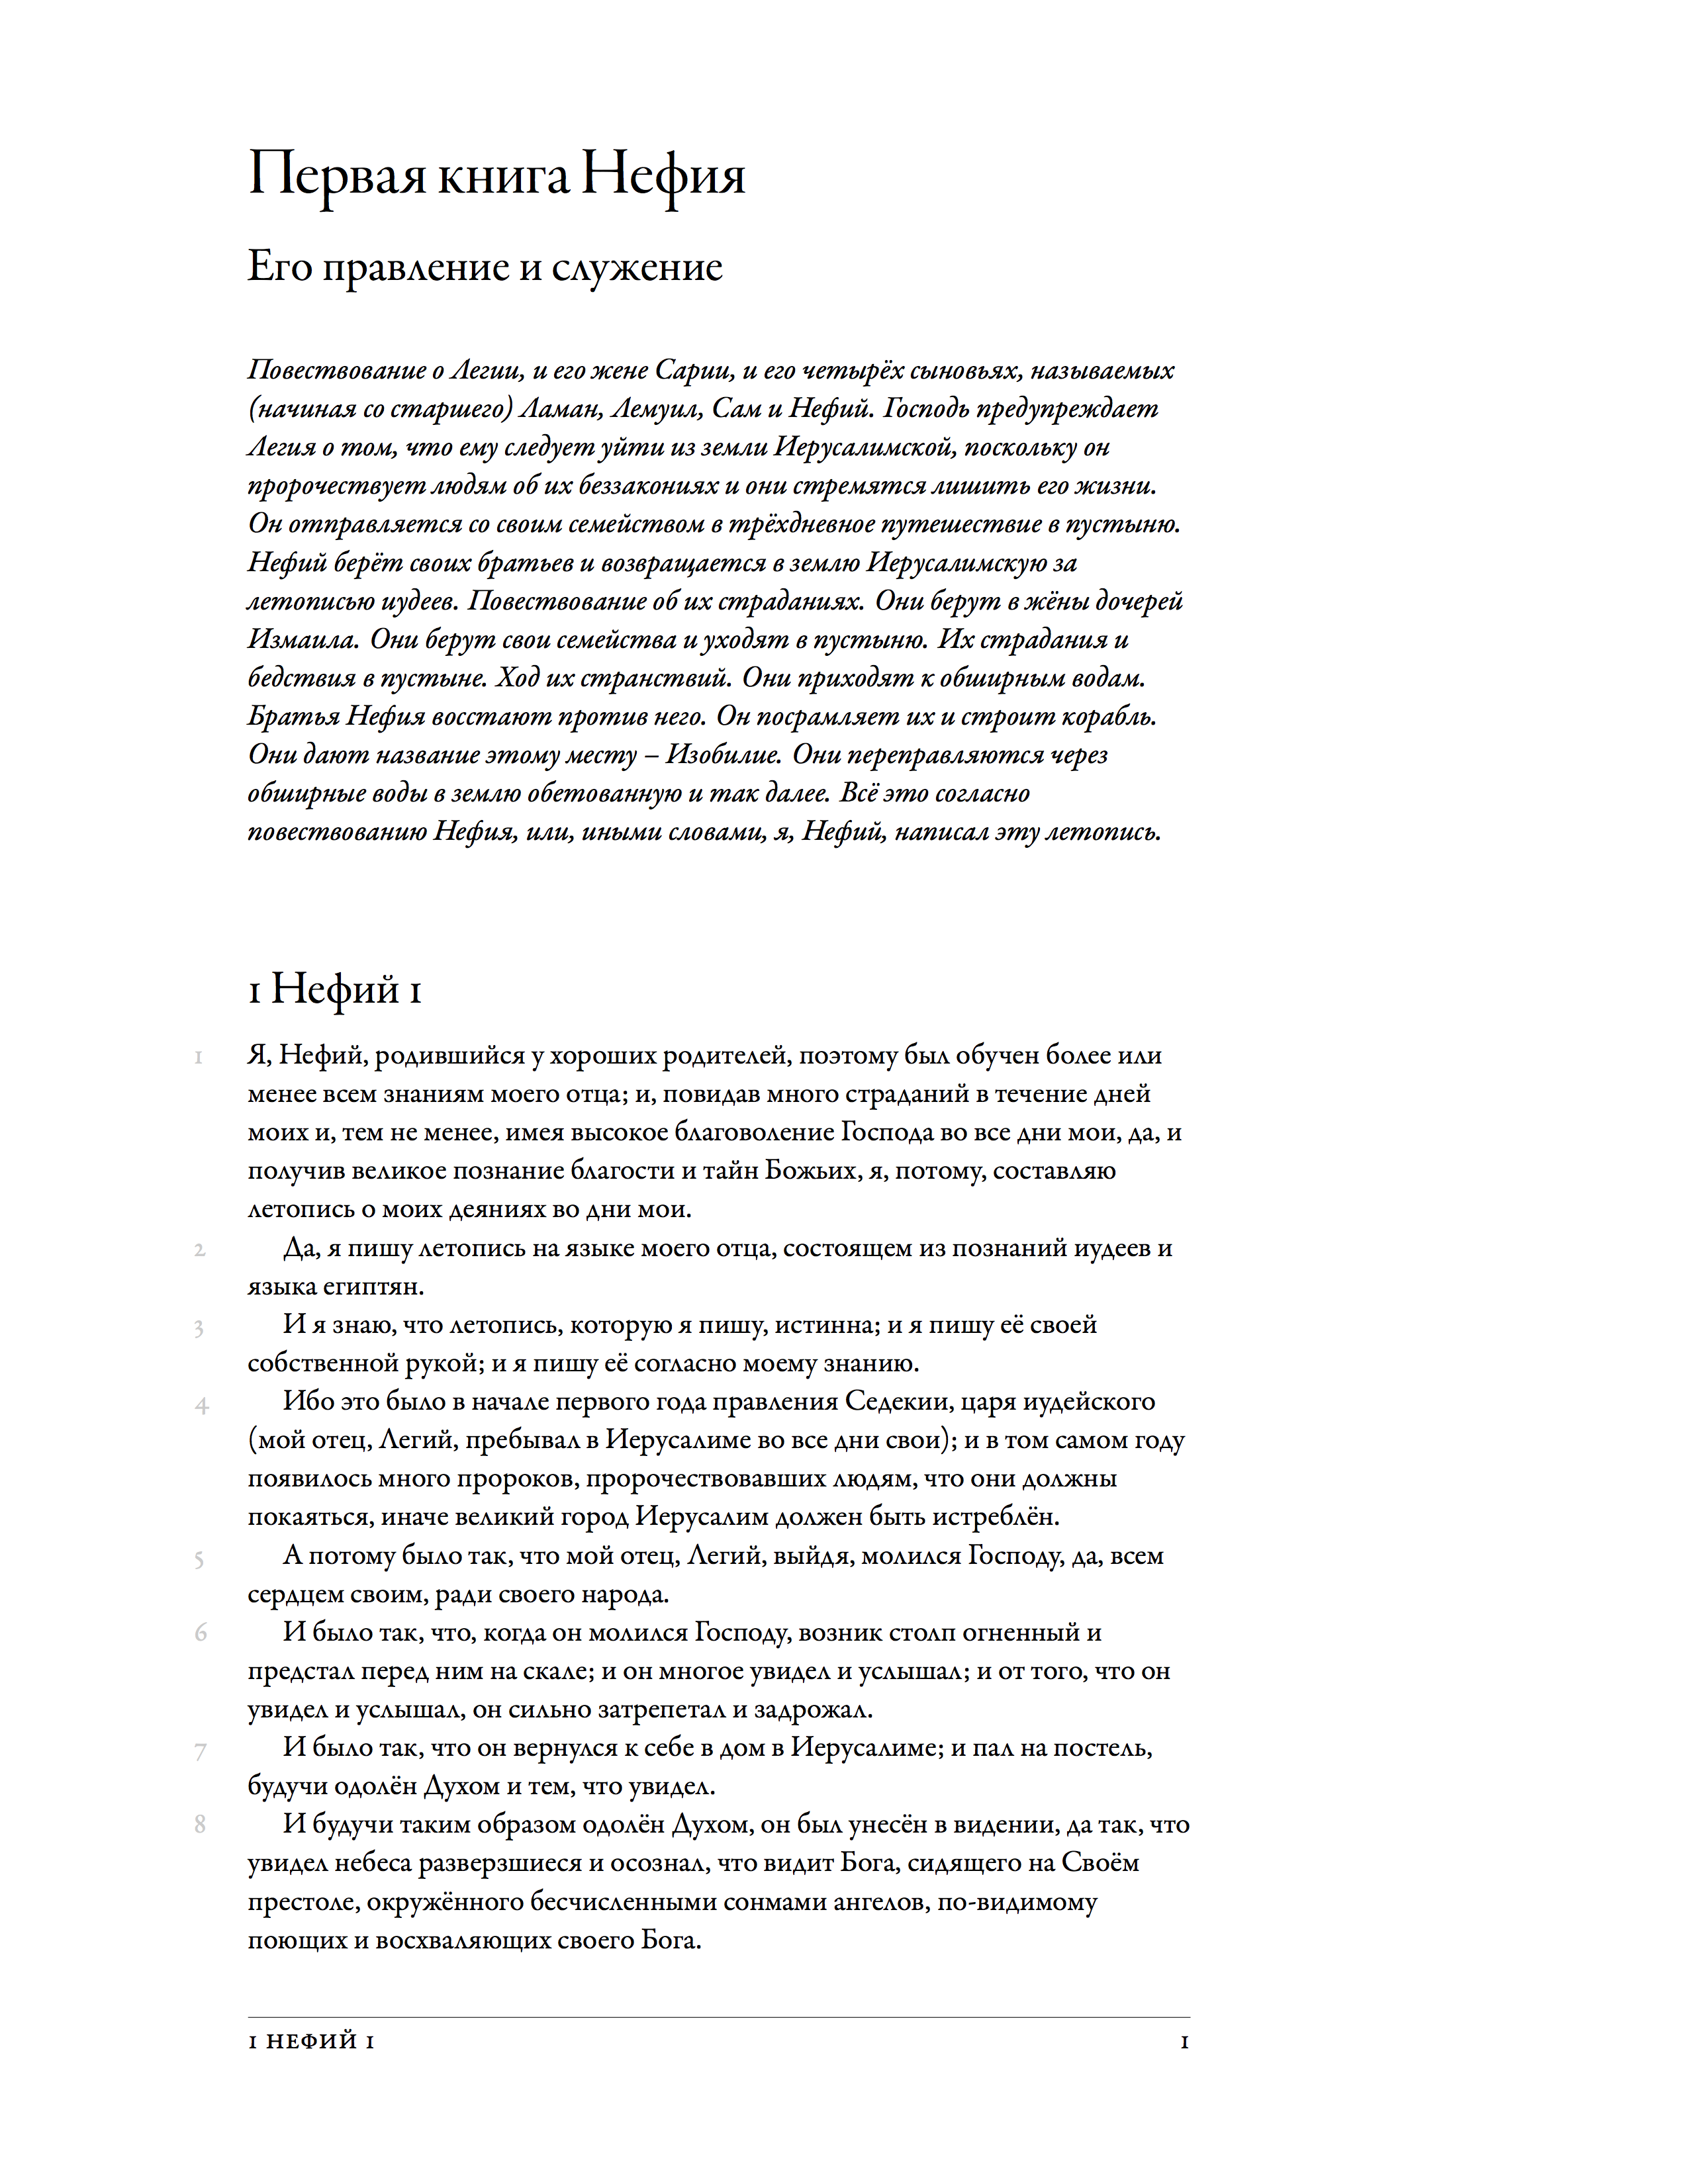 projects/study-edition/rus-bofm/study-edition-rus-bofm-01.png